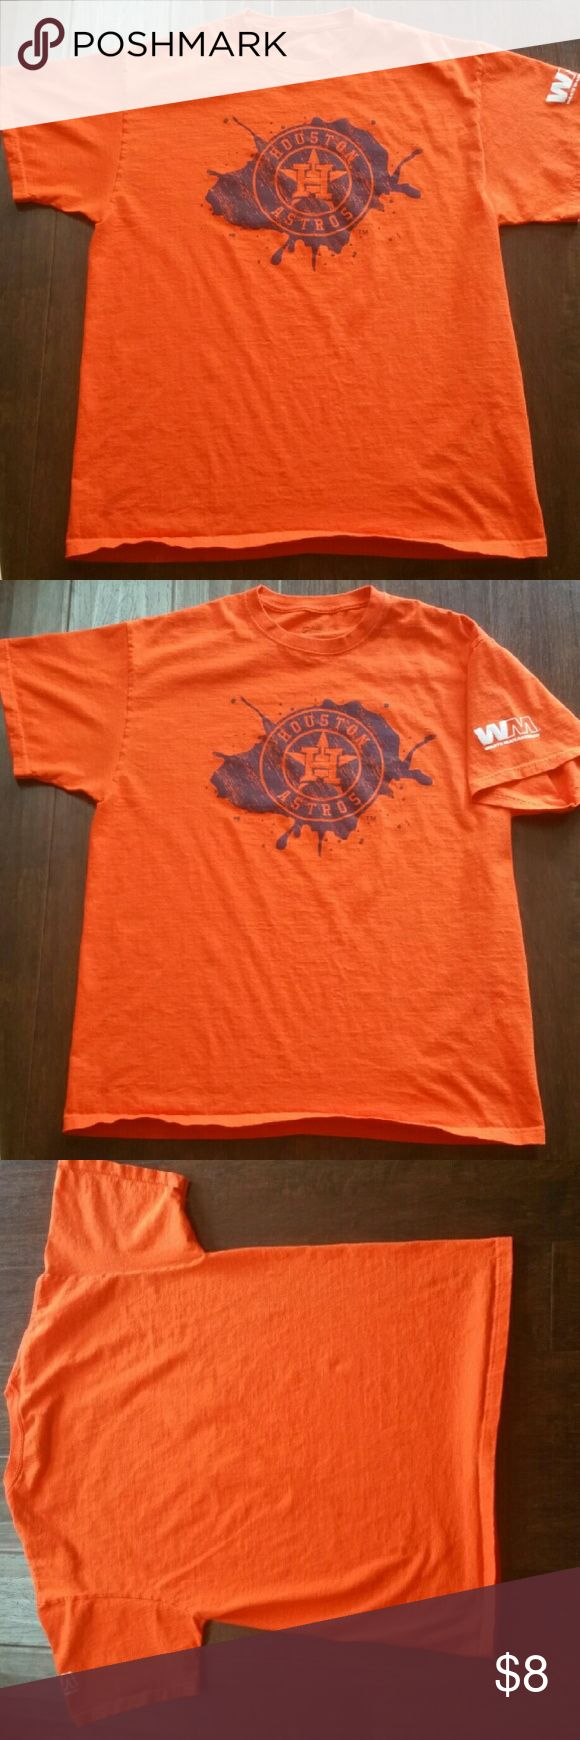 Houston Astros T Shirt Orange Houston Astros T Shirt in great condition. Shirts Tees - Short Sleeve